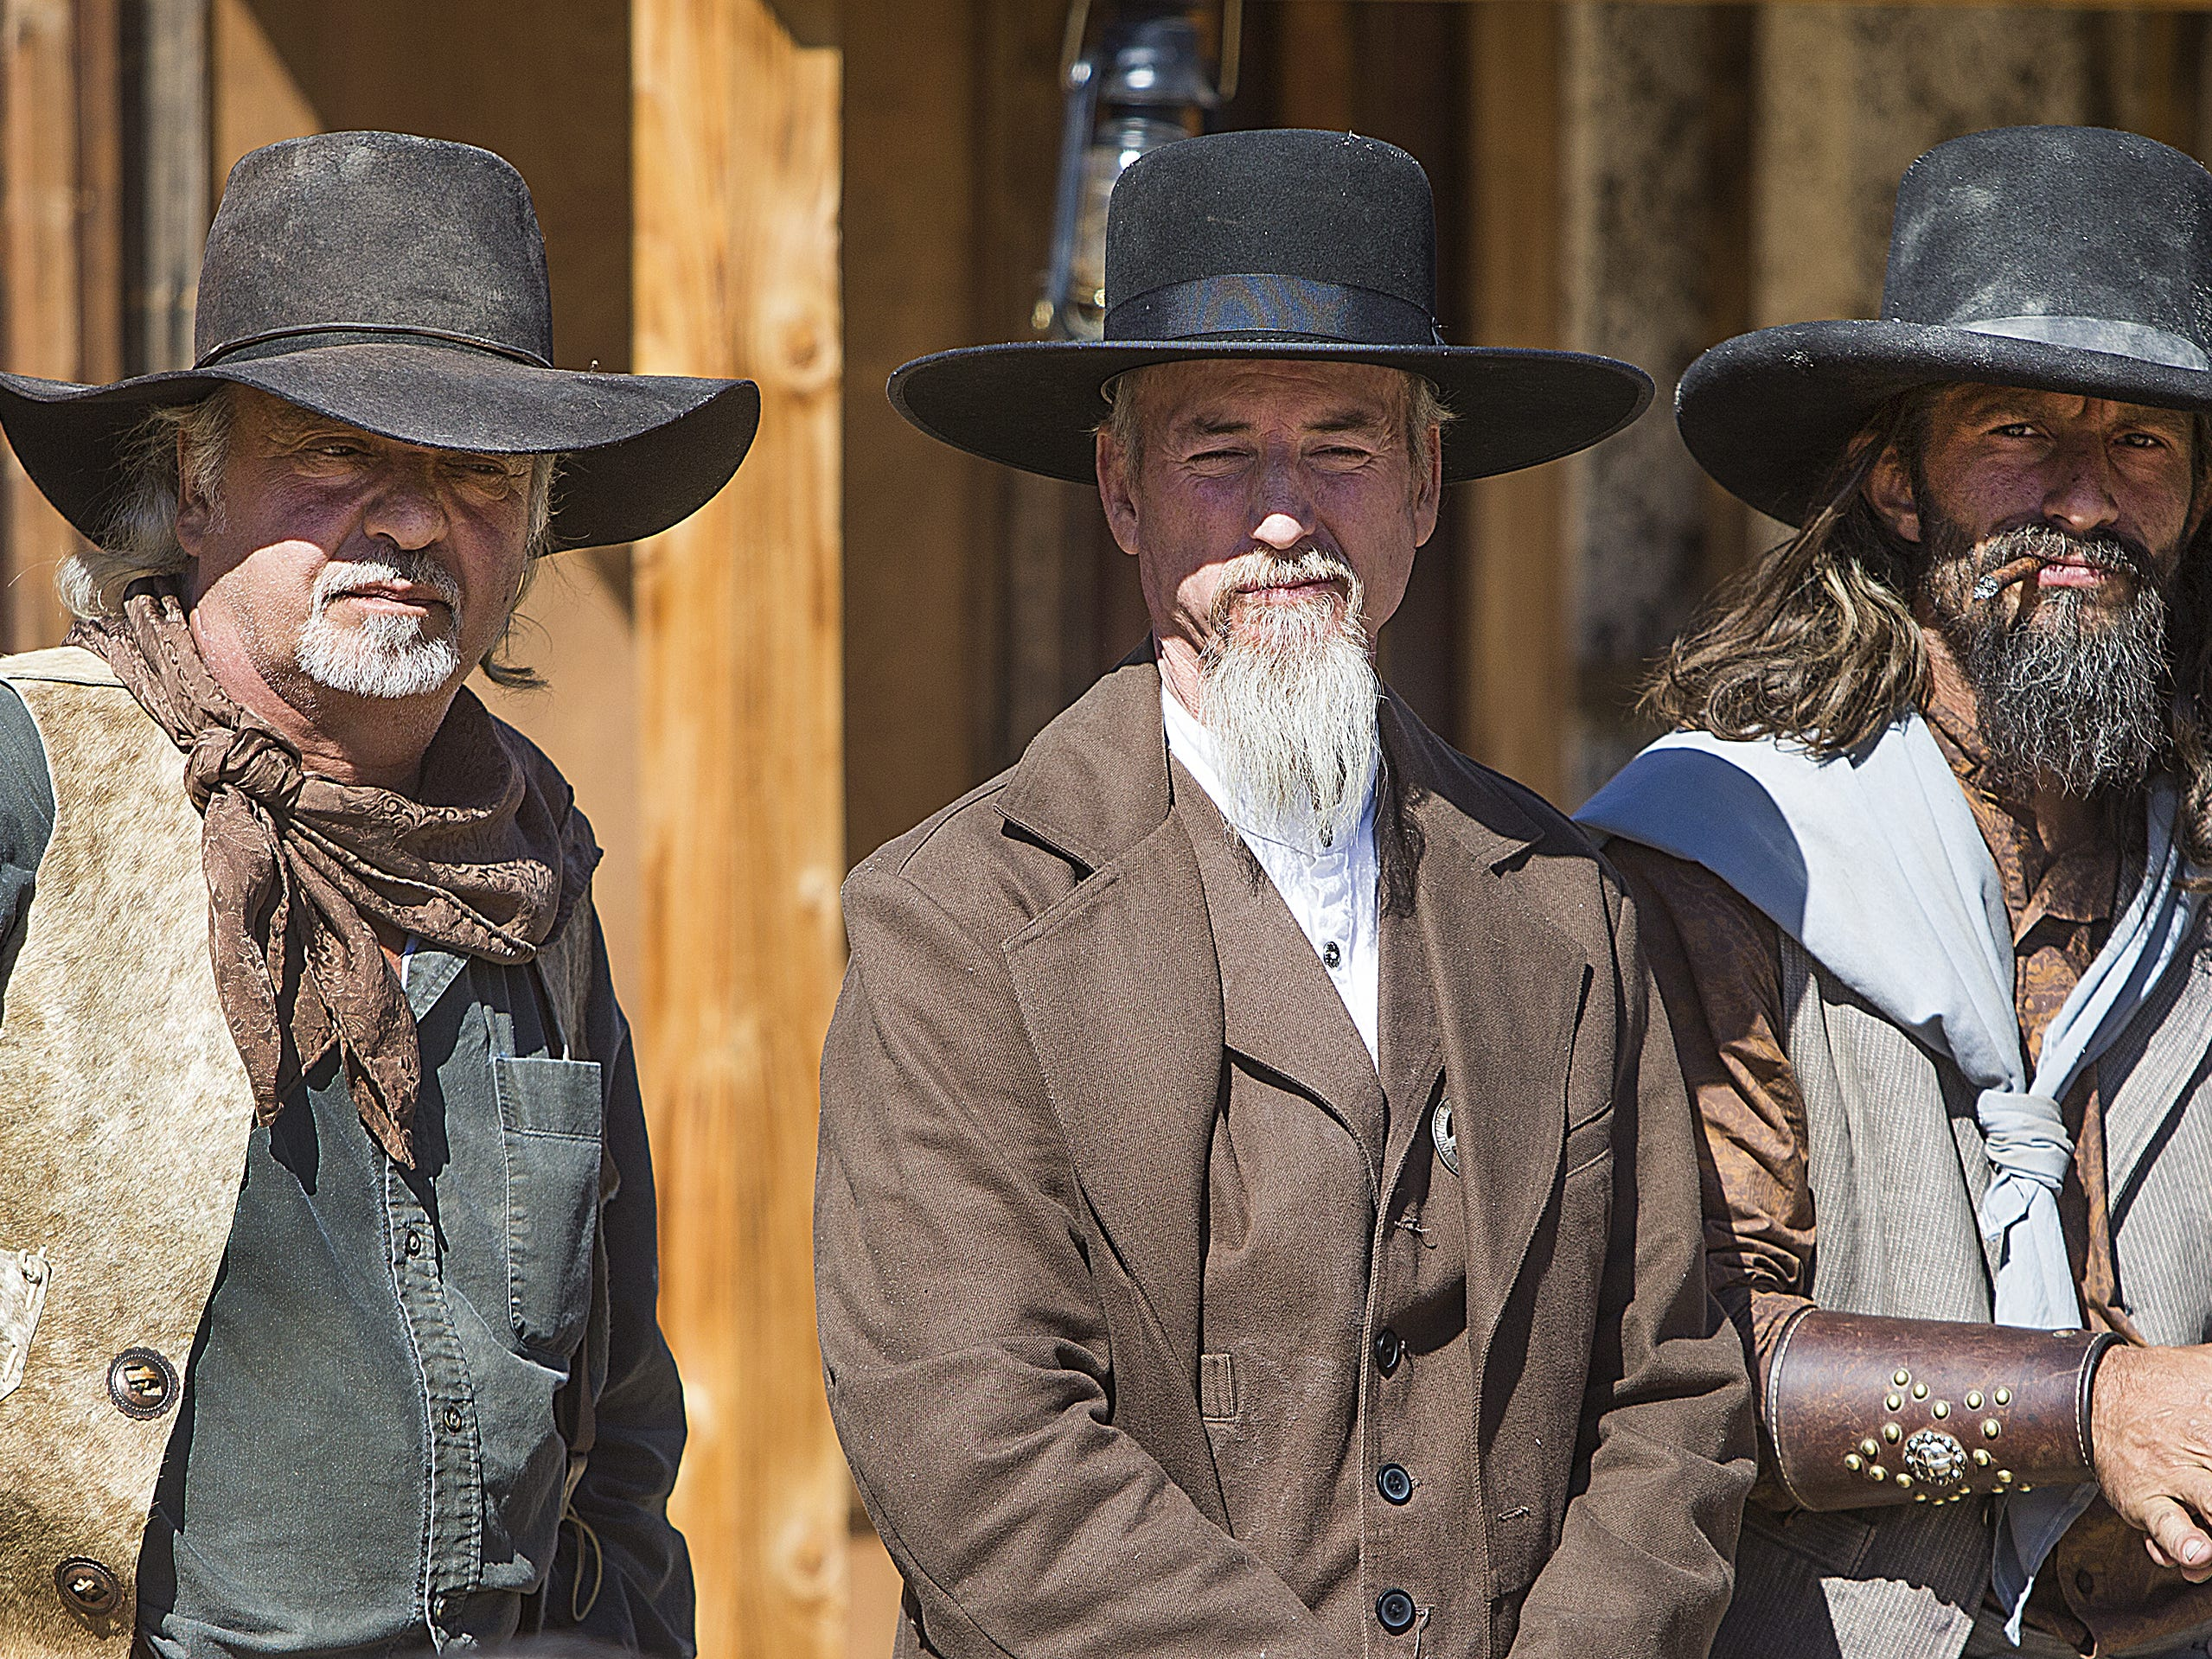 Members of Six Gun Entertainment prepare to perform their Wild West stunt show at Frontier Town in Cave Creek, Tuesday, Oct. 9, 2018.